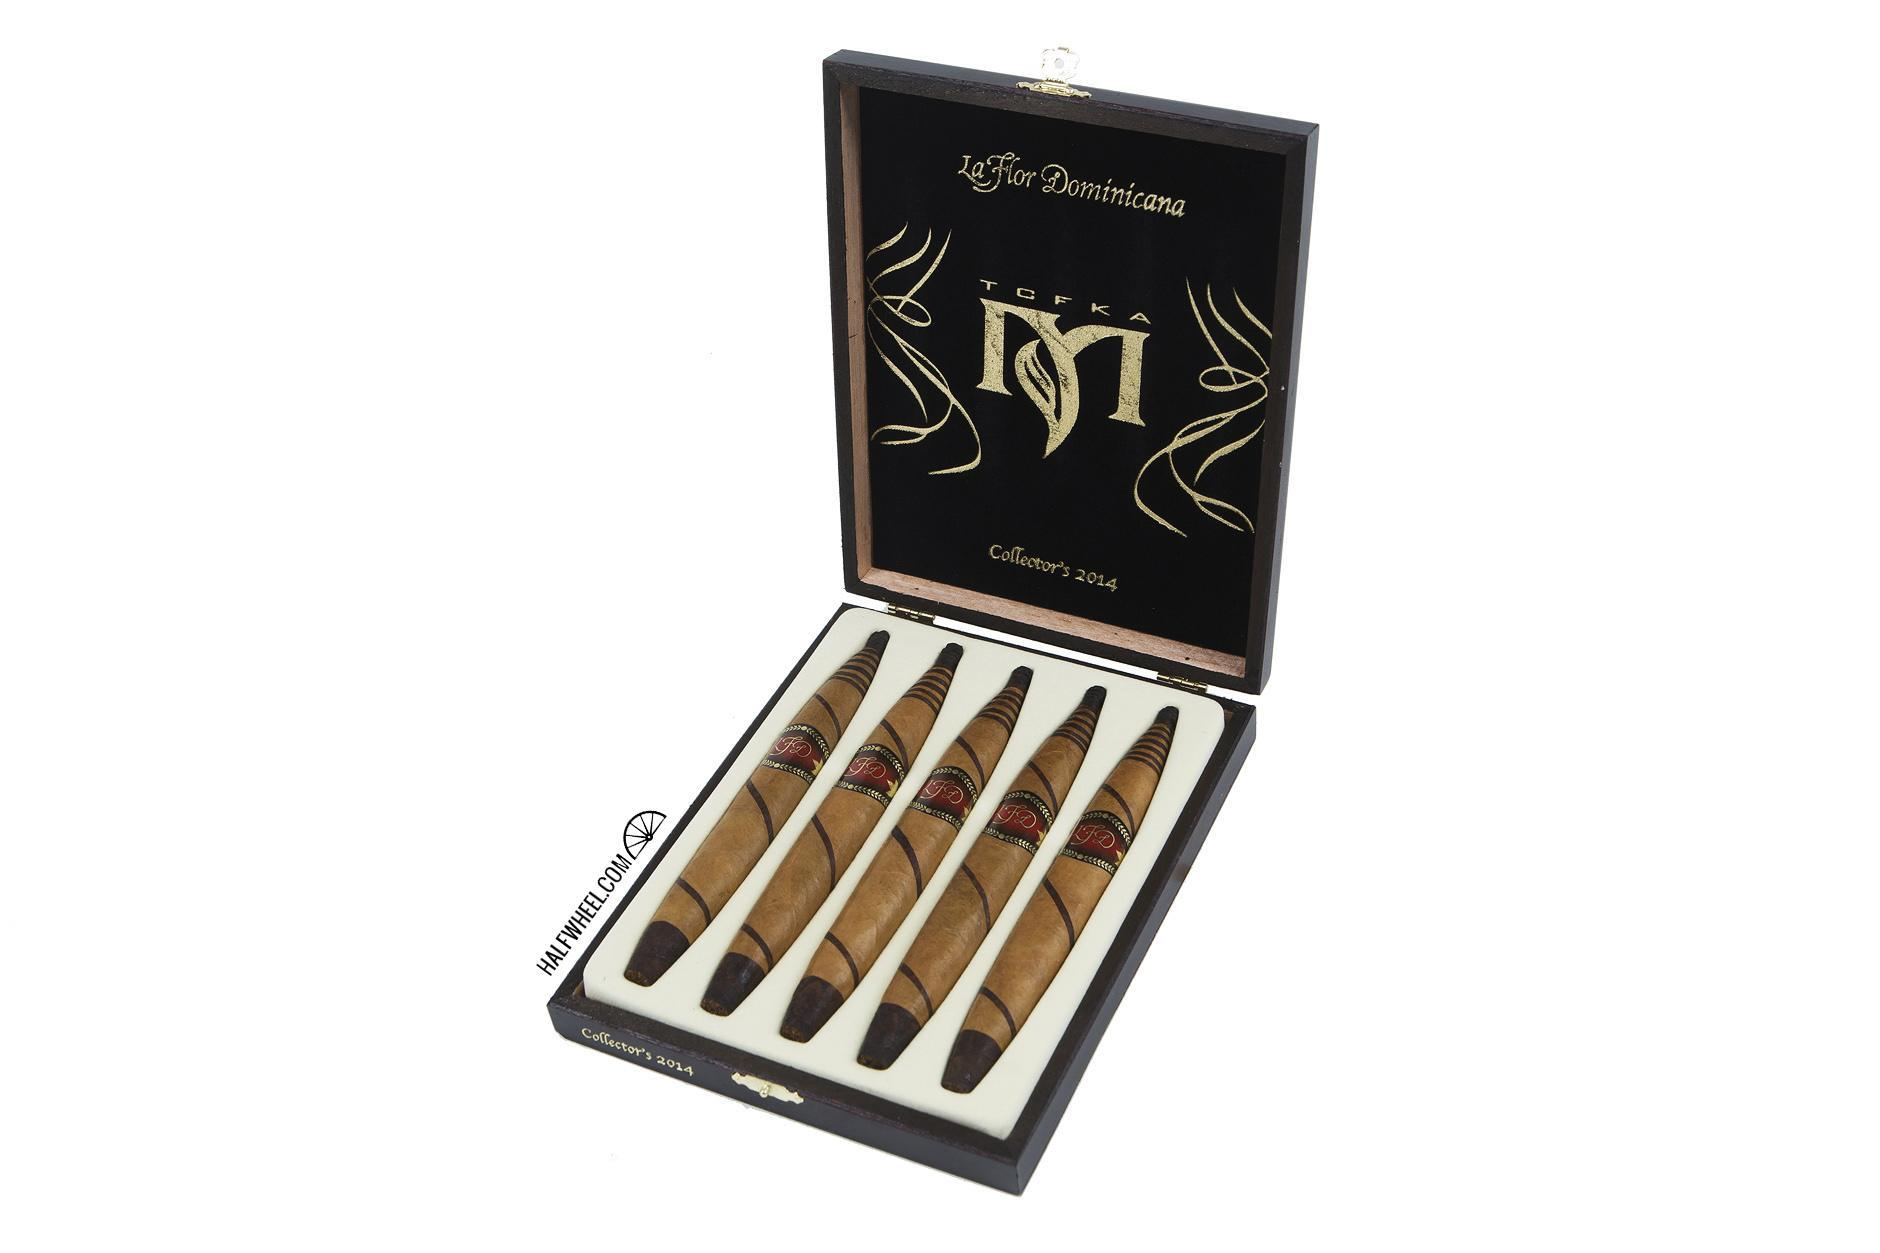 La Flor Dominicana TCFKA  M Collector s 2014 Box 2